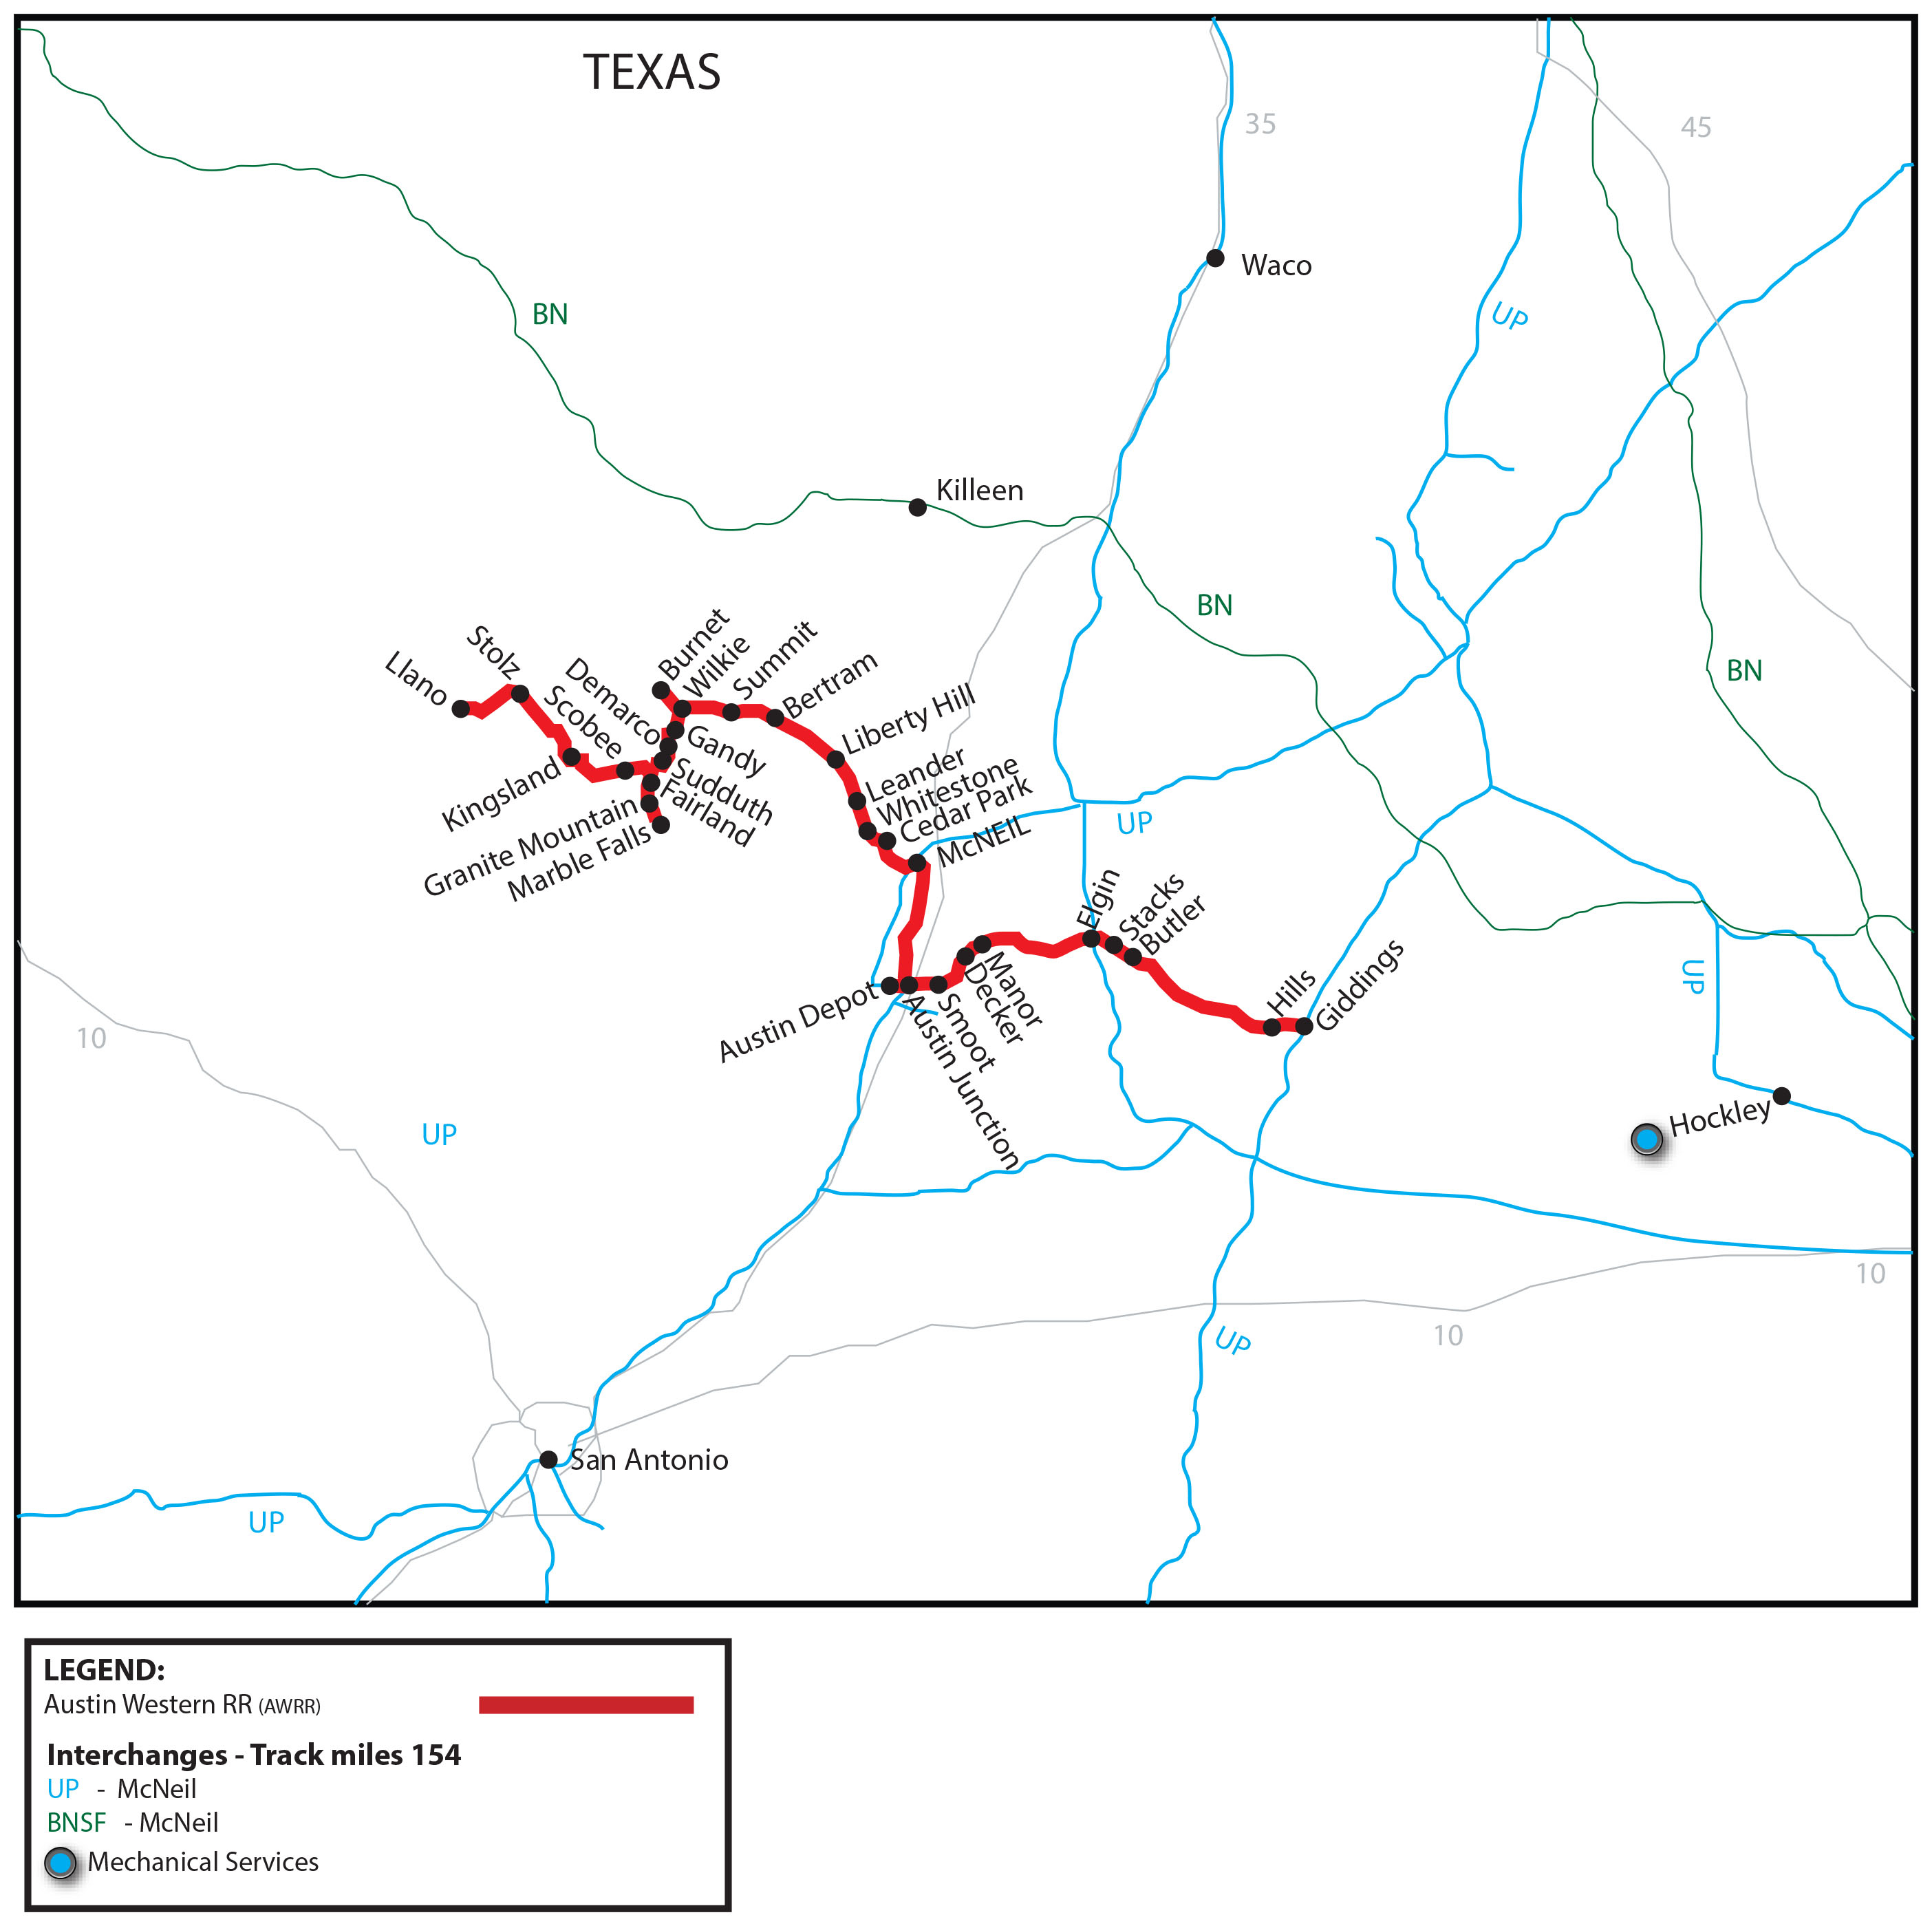 Austin Western Railroad (Awrr) - Watco Companies - Giddings Texas Map